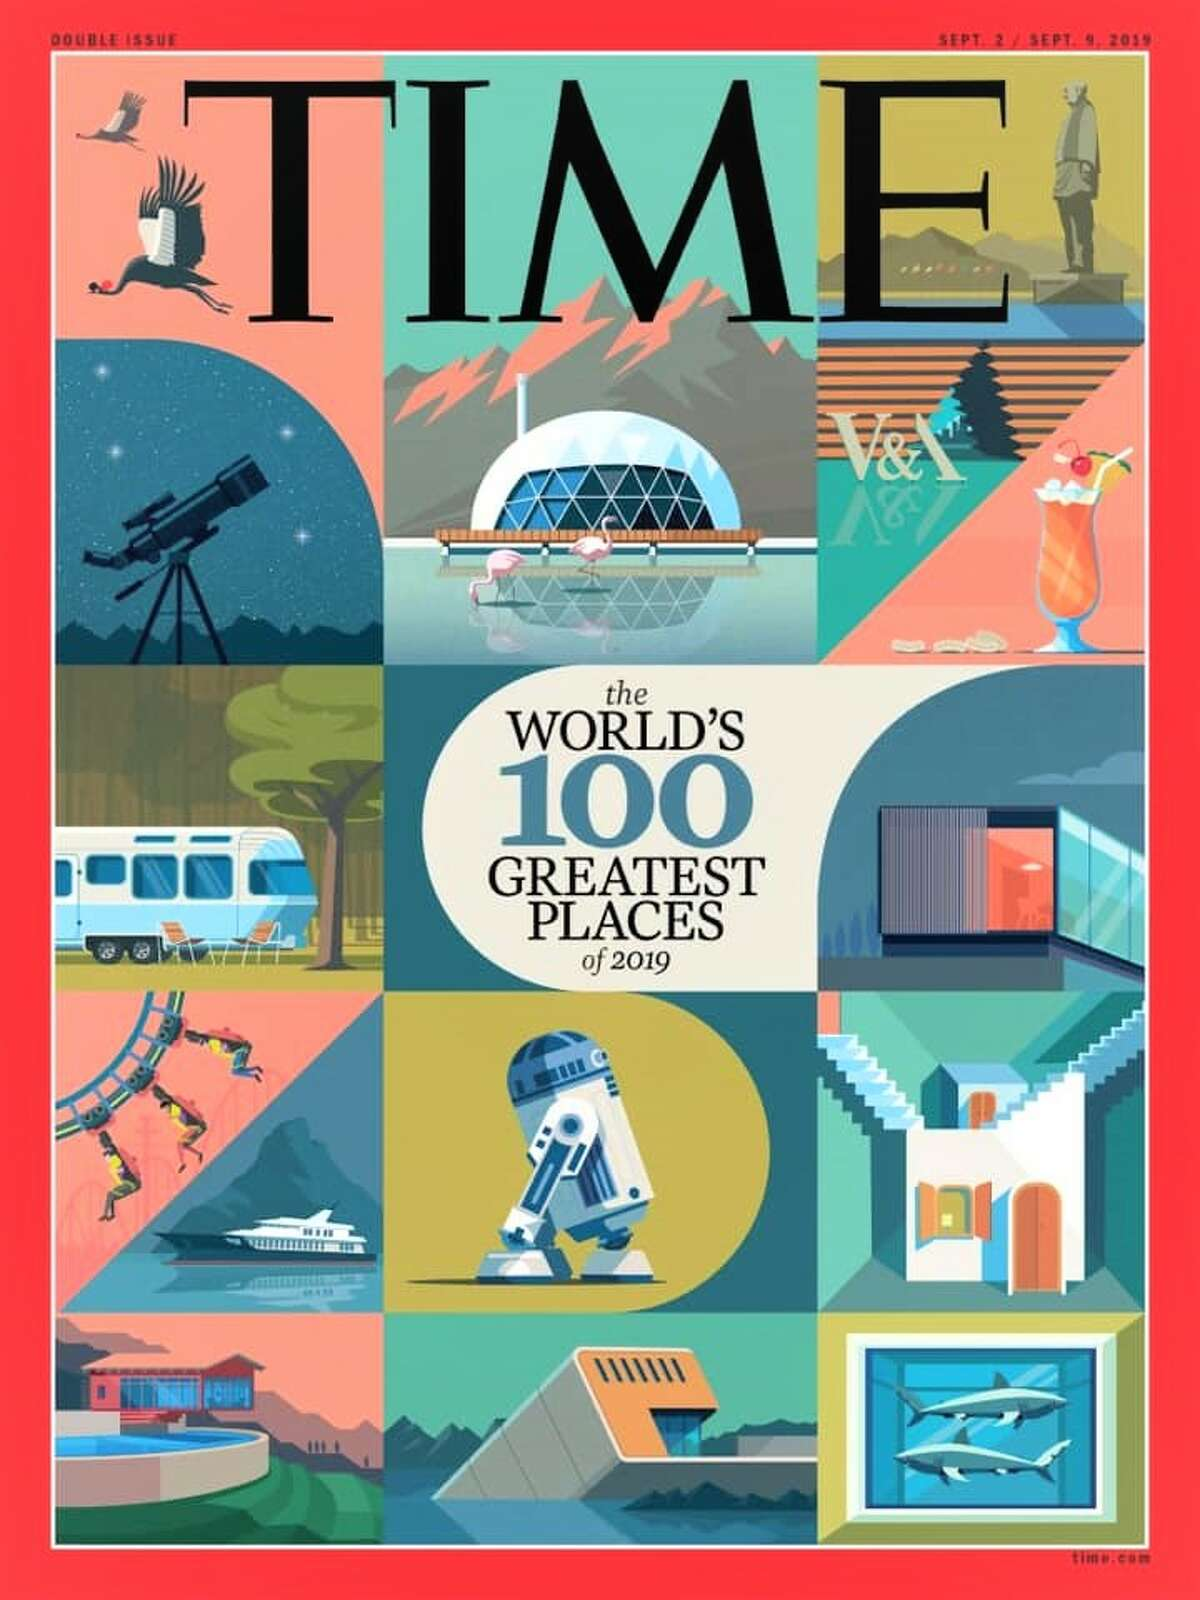 Time Magazine's 'The World's 100 Greatest Places 2019' list includes Indigo.